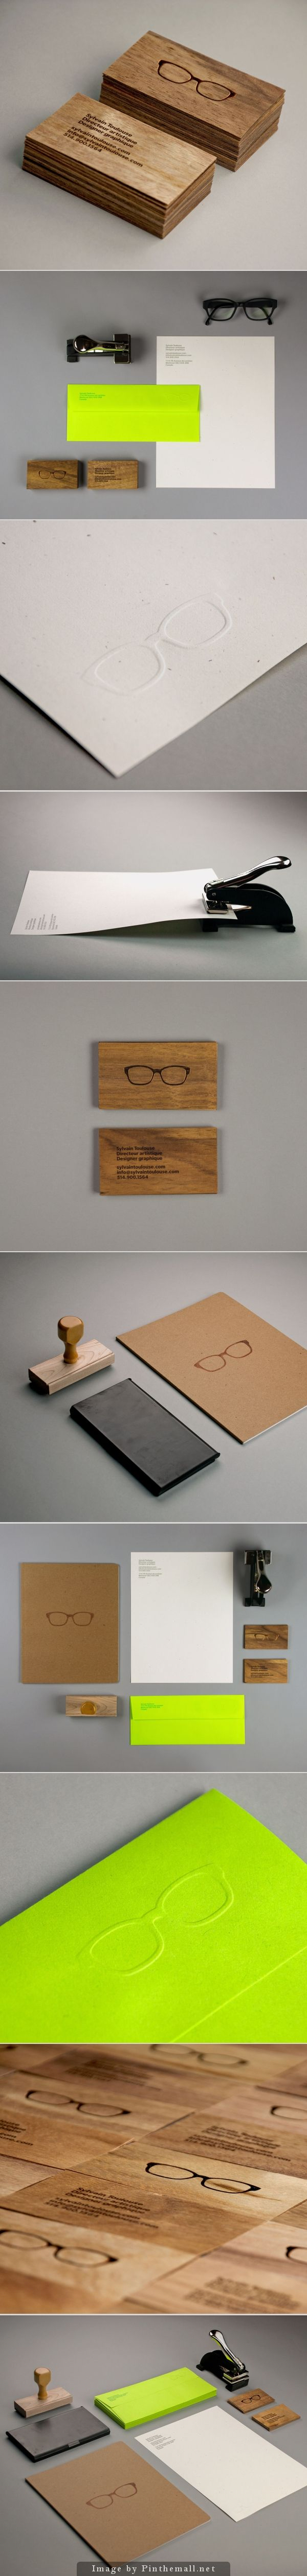 Corporate identity branding stationary minimal graphic logo design letterpress gold foil kraft cardboard colored paper wooden business card letterhead acc wood colors